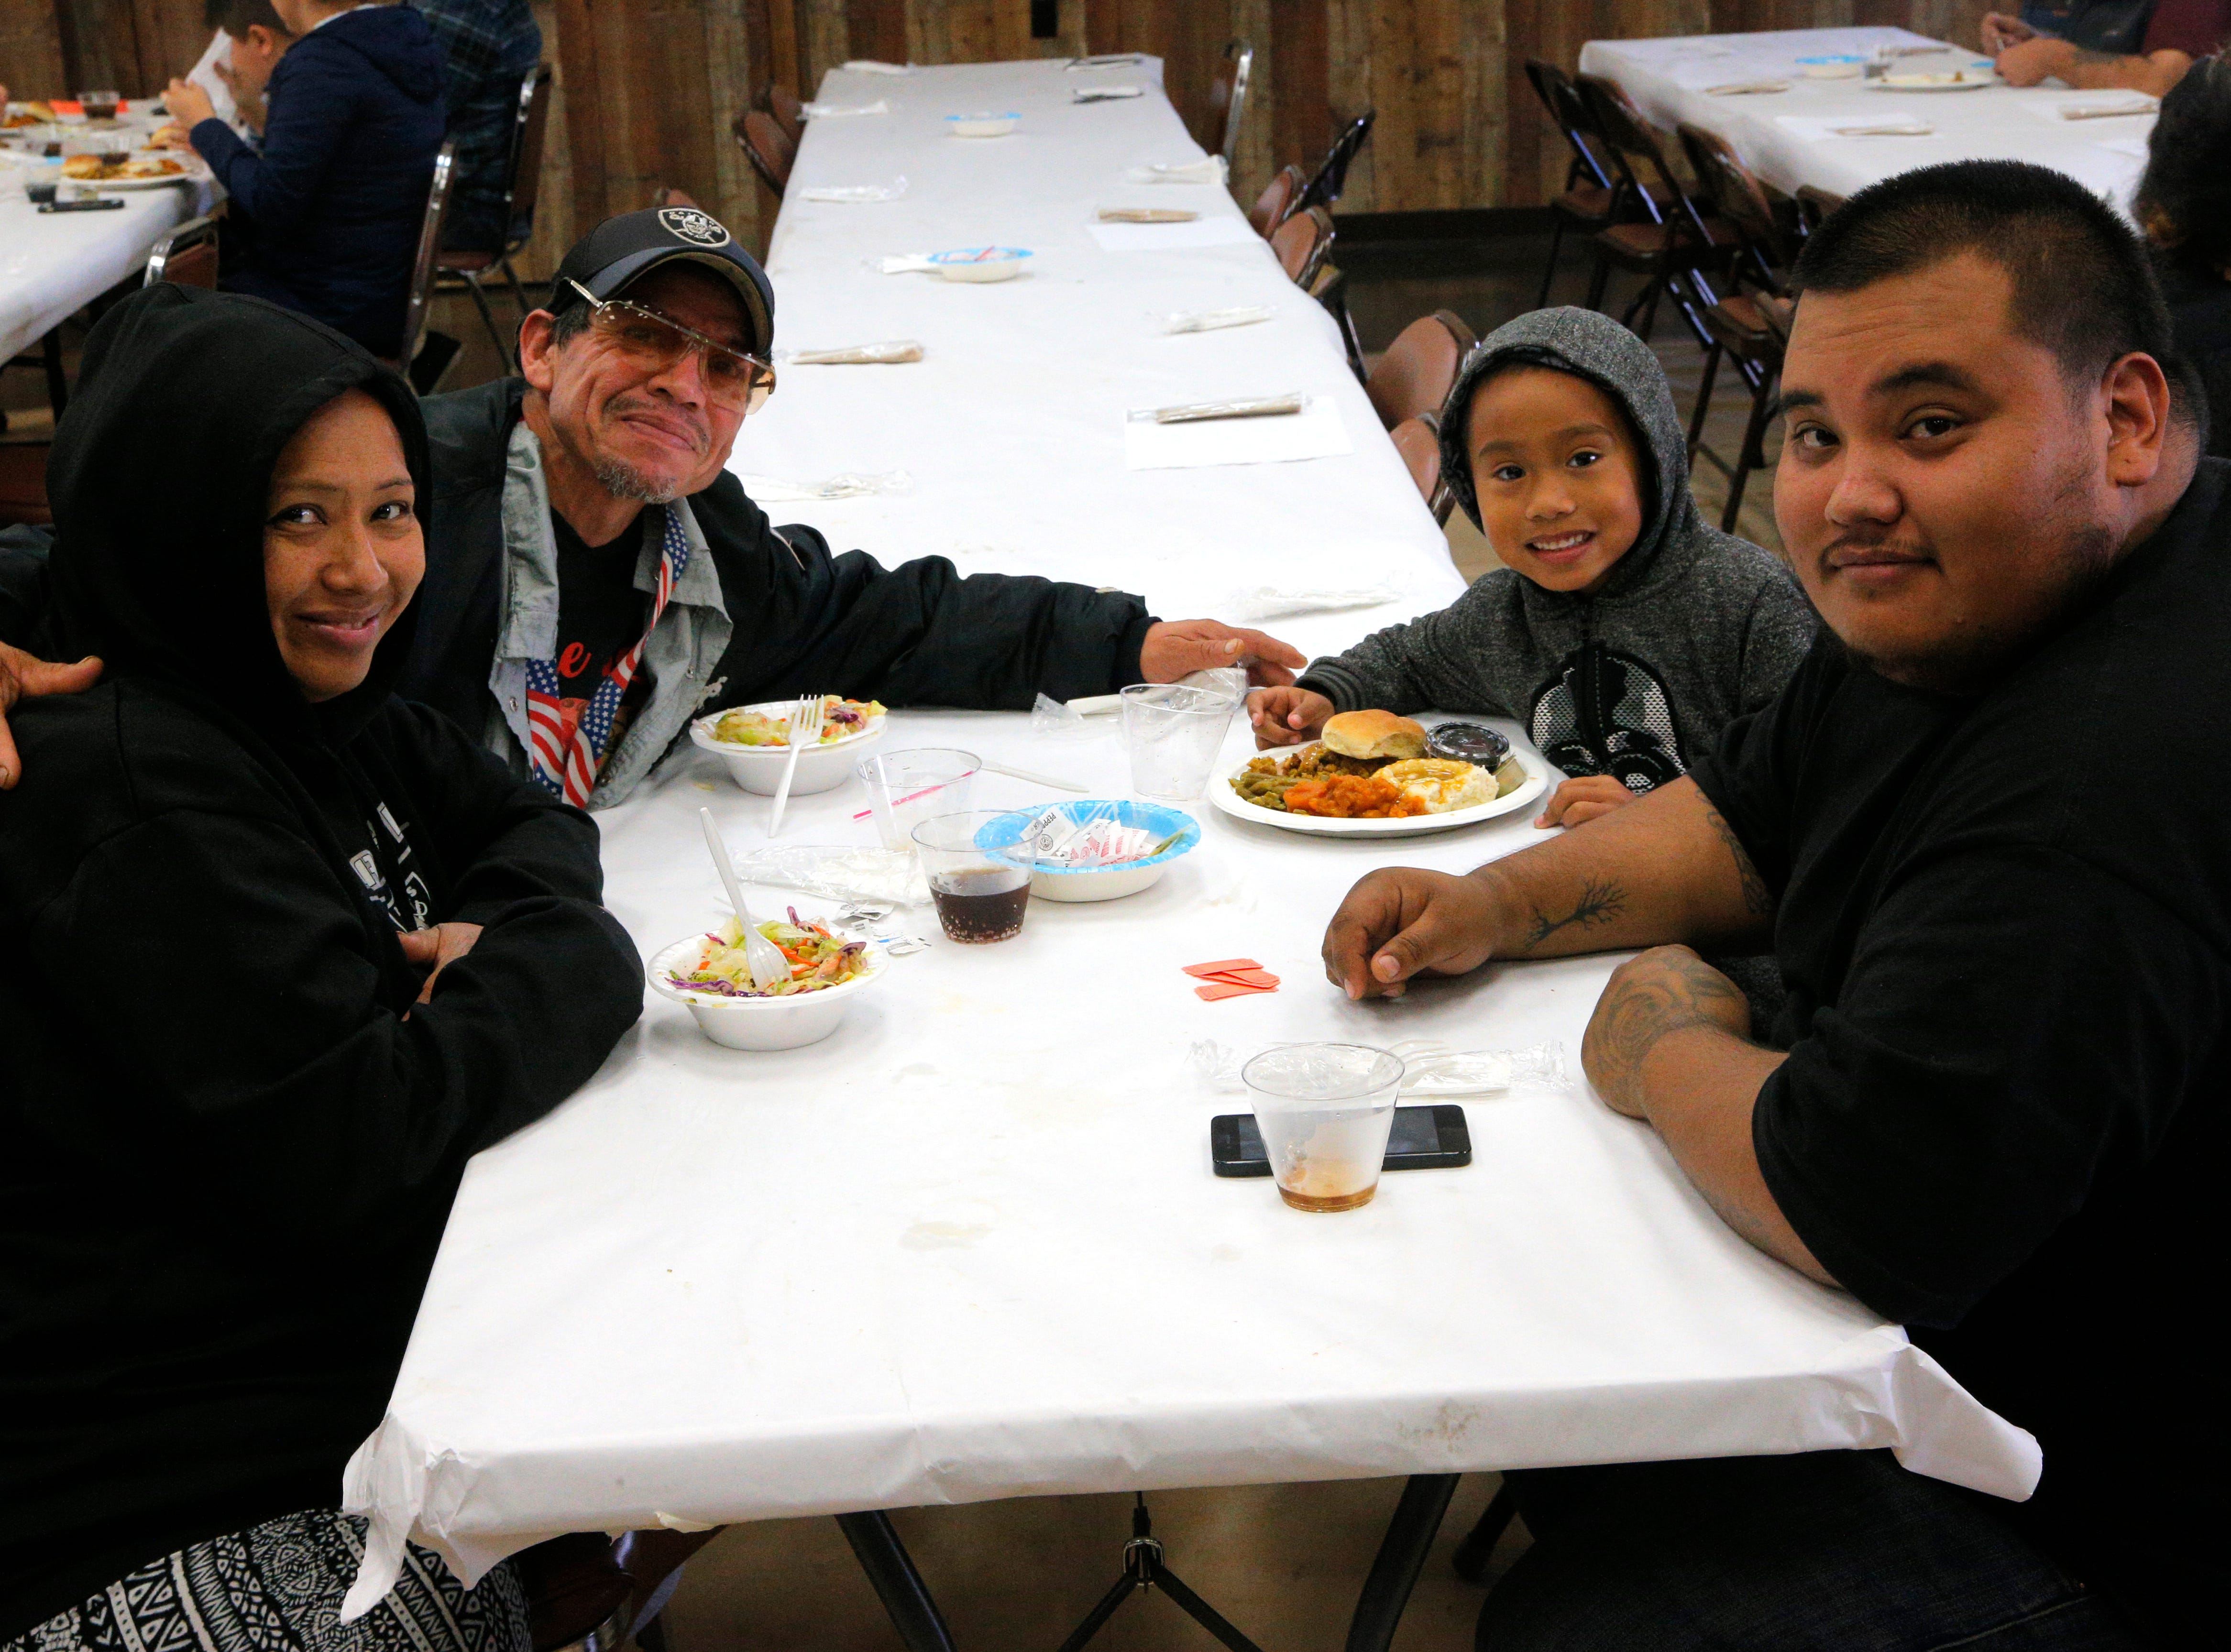 From left: Lenora Gabot, Gilbert Moreno, Zephaniah Gabot, 6, and Jessie Orozco, 25, praised the food served at the American Legion Post 31 on Thanksgiving.